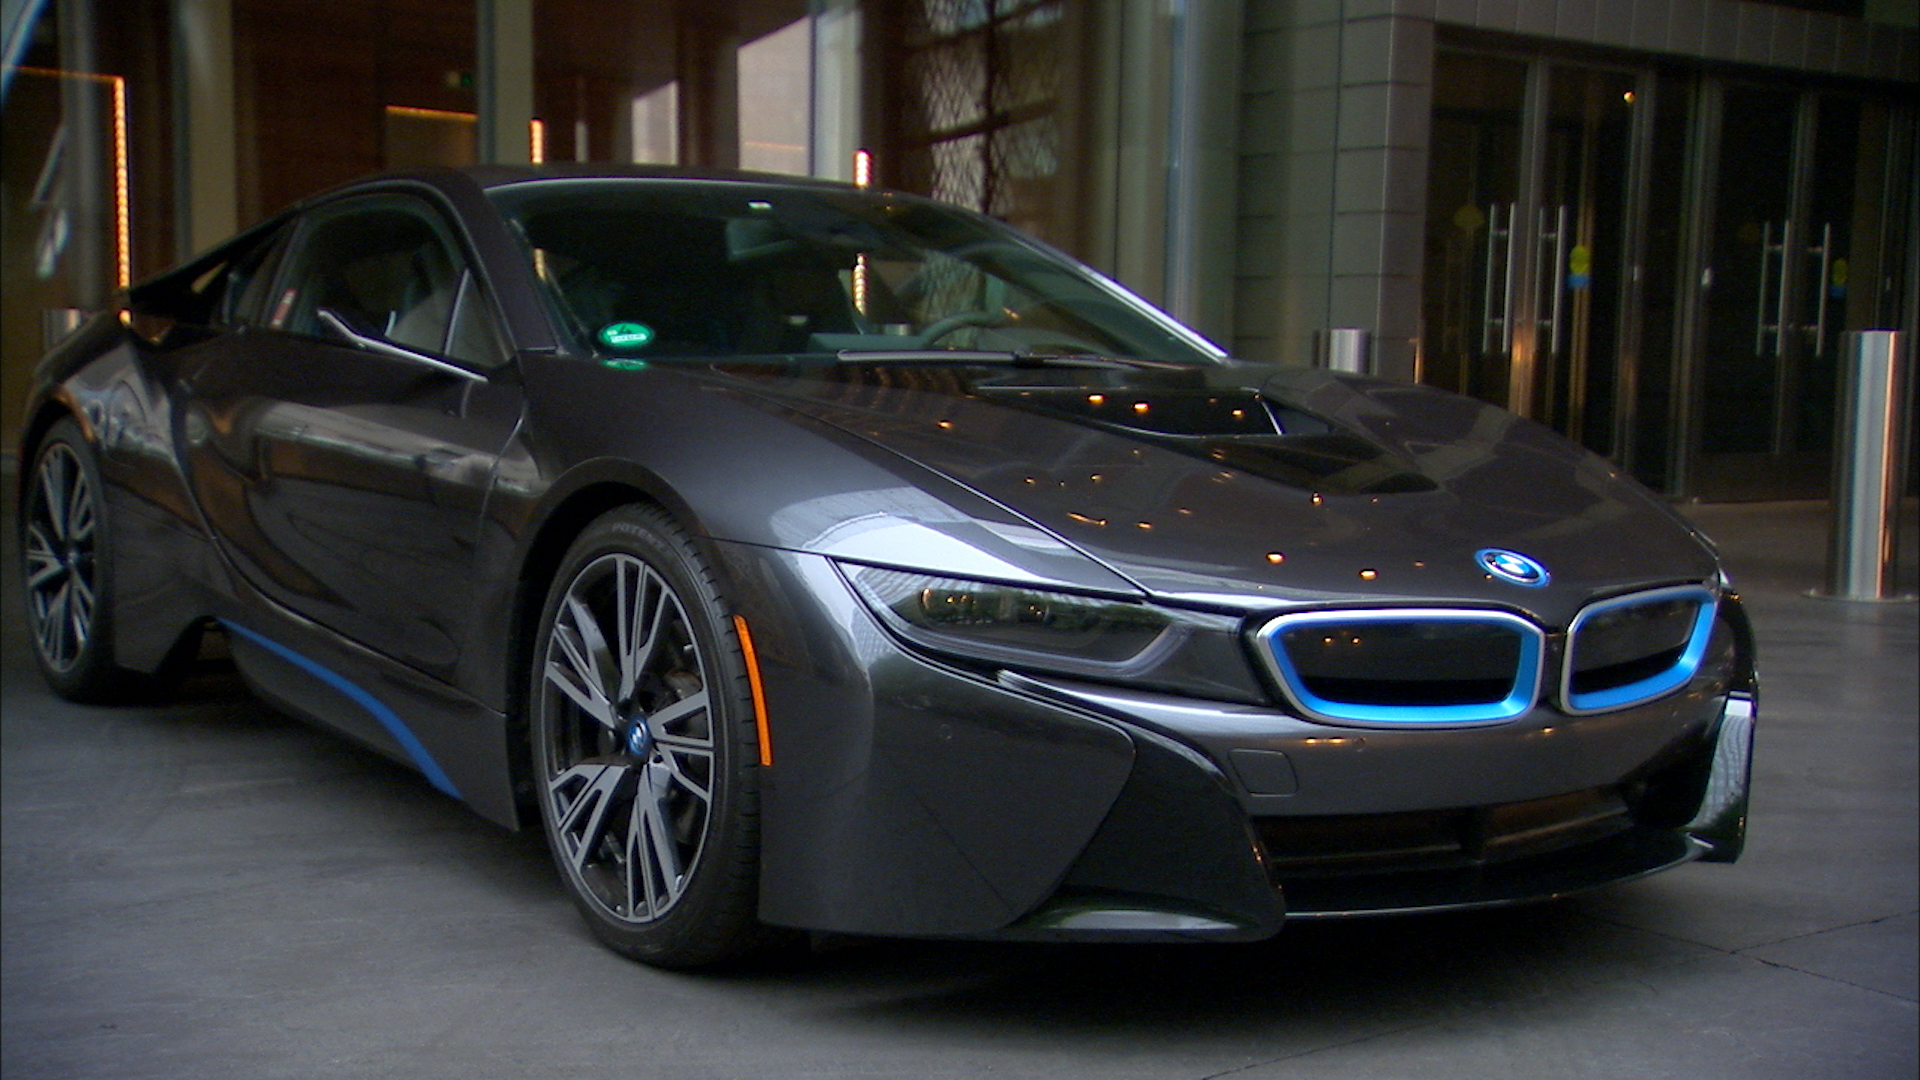 Video: Lacking mirrors, BMW i8 gives clear rear views